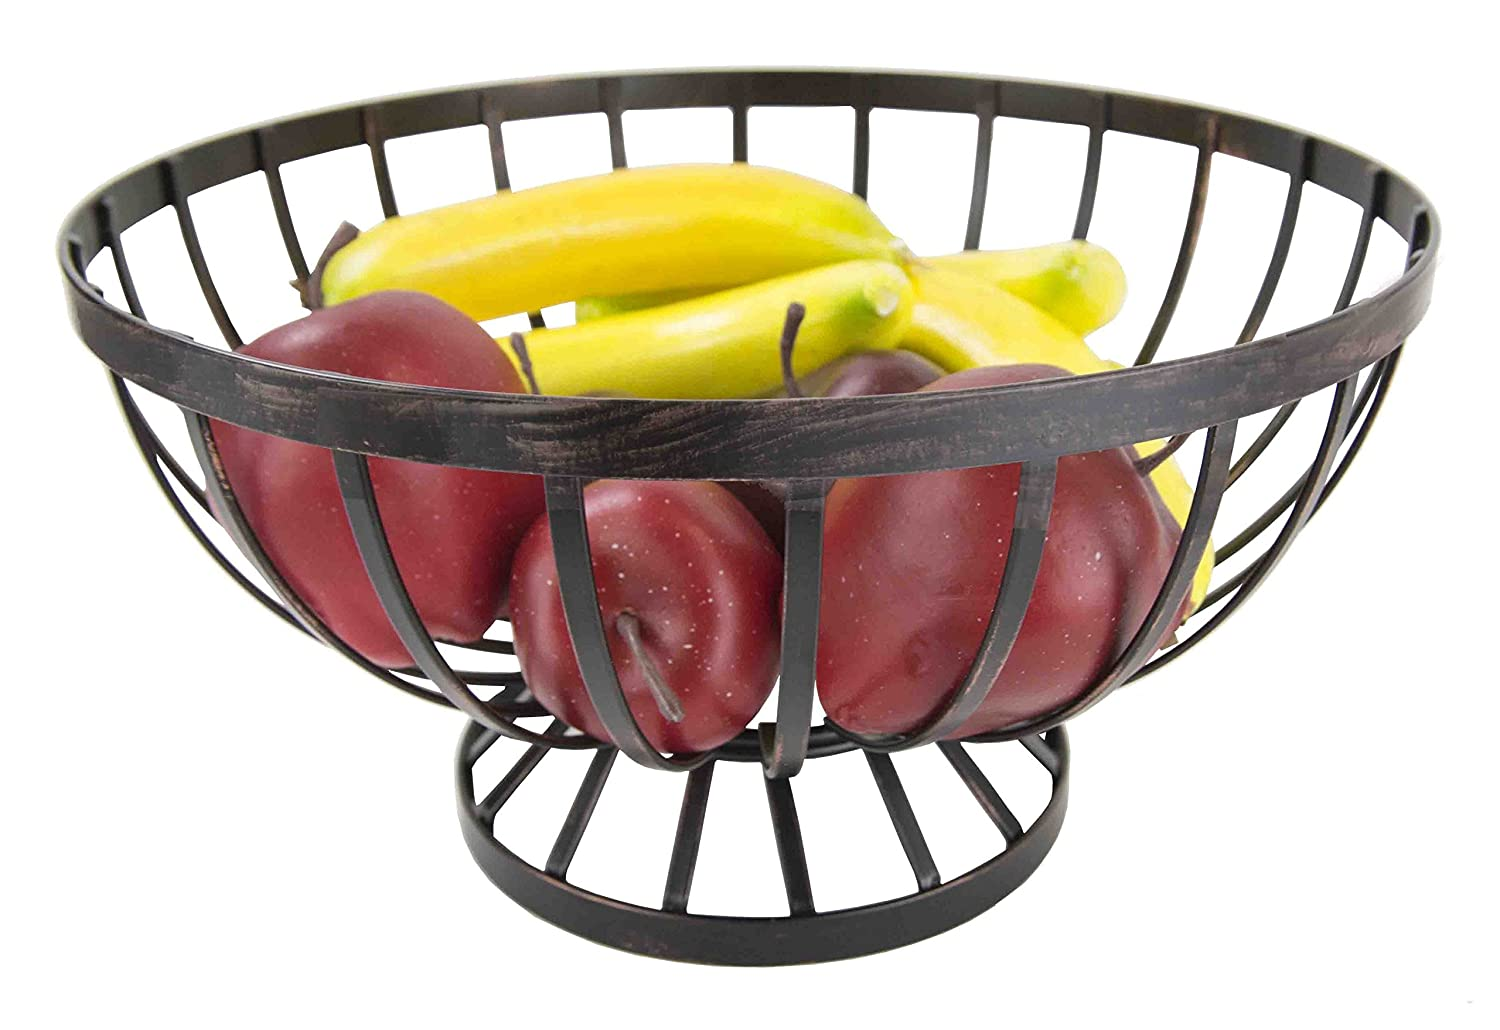 Home Basics Rustic Oil-Rubbed Bronzed Fruit Basket HDS Trading Corp.